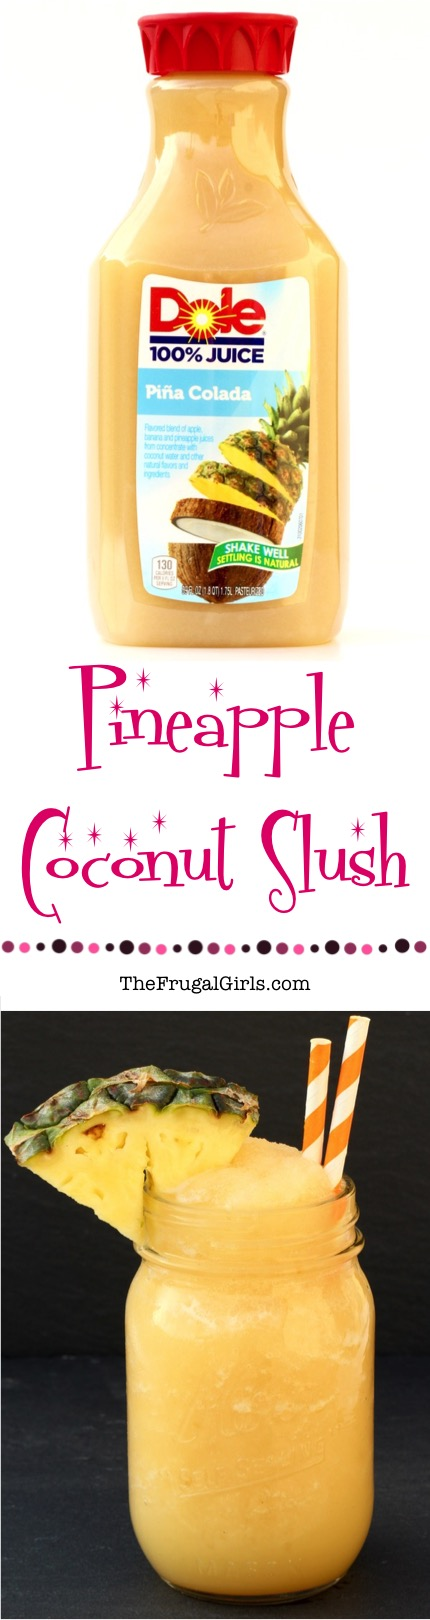 Pineapple Coconut Slush Pina Colada Recipe from TheFrugalGirls.com